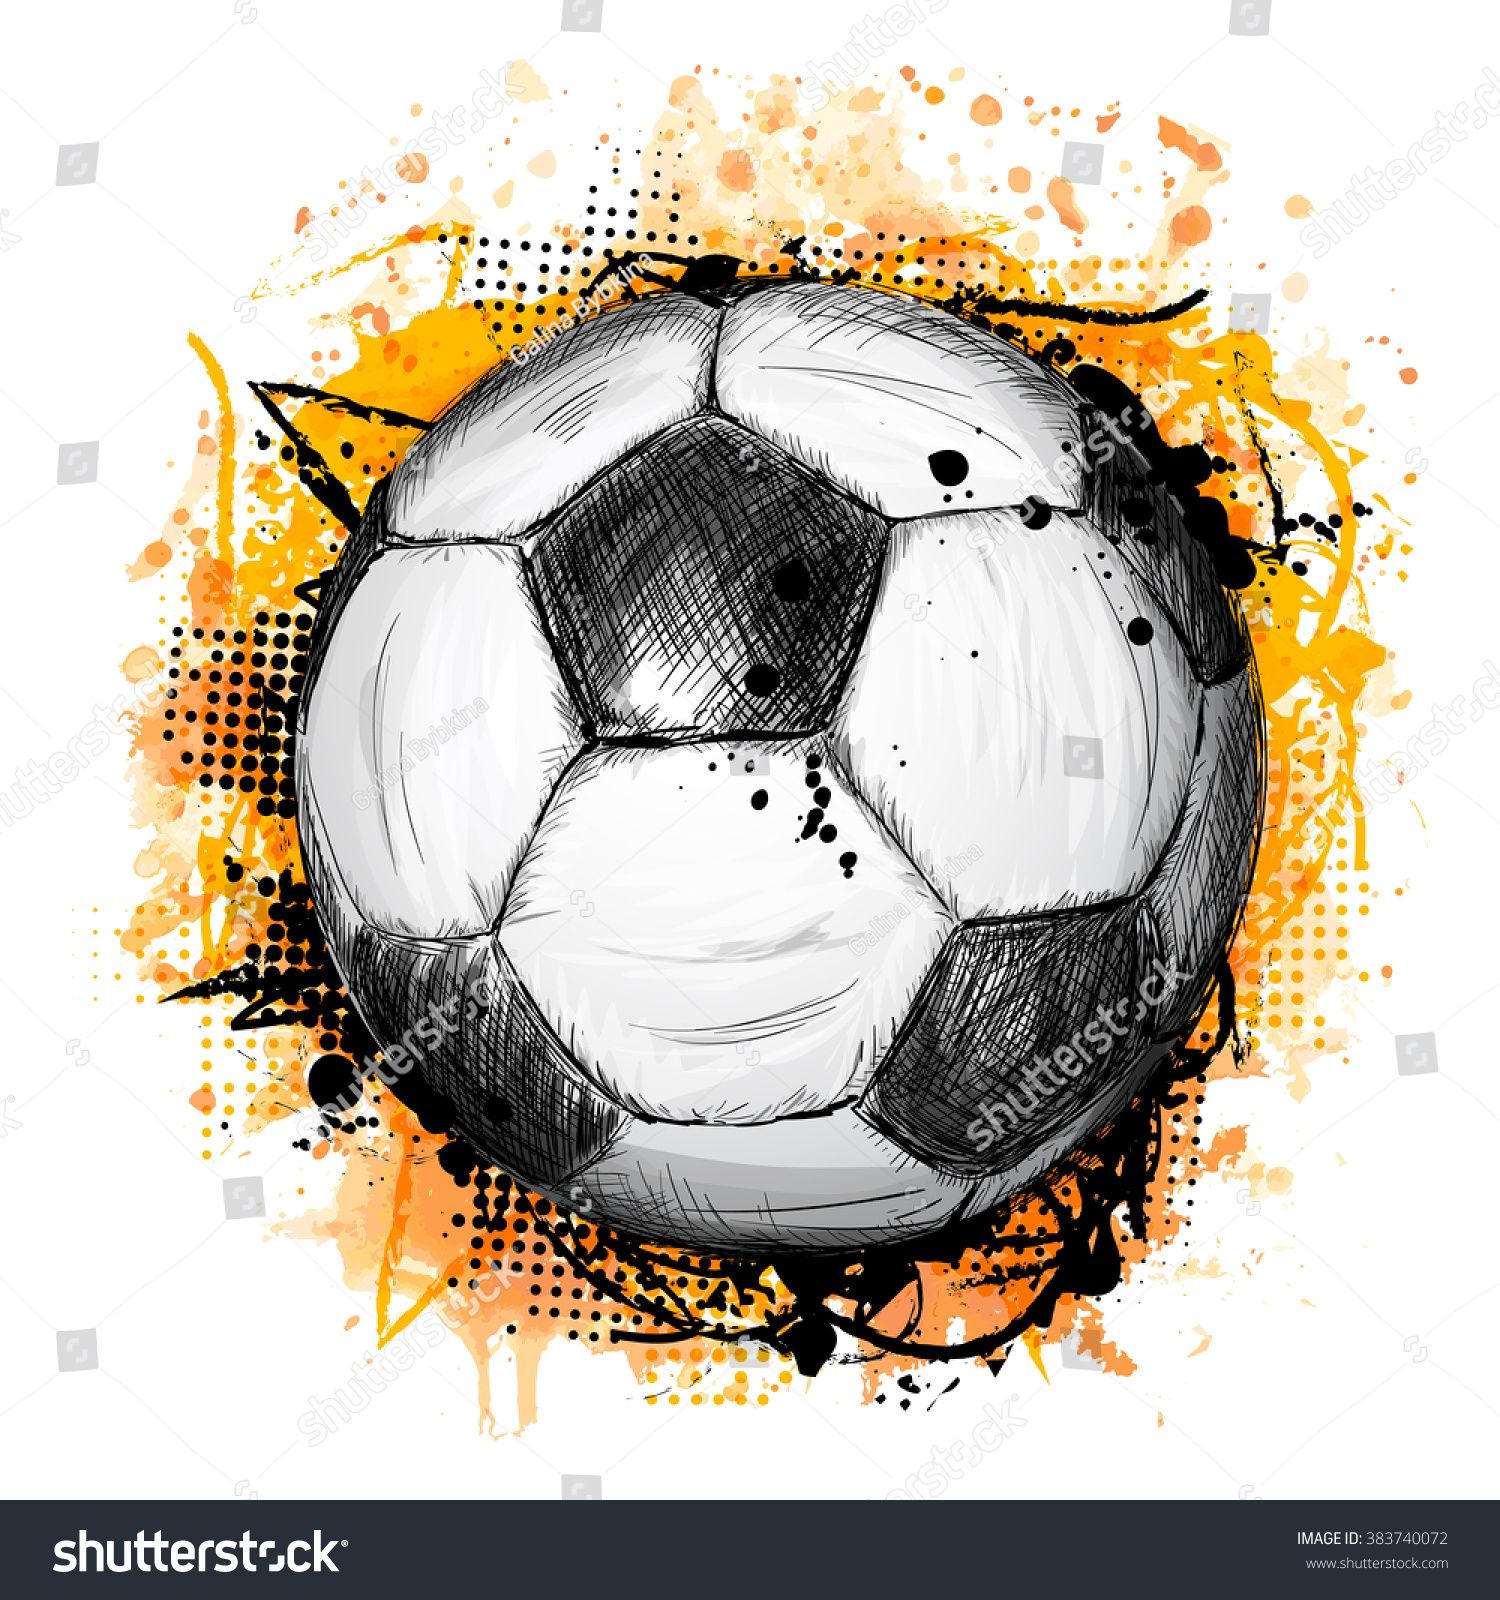 Hand Drawn Vector Illustration With Soccer Or Football Ball Grunge Composition And Orange Hand Drawn Vector Illustrations How To Draw Hands Hand Drawn Vector